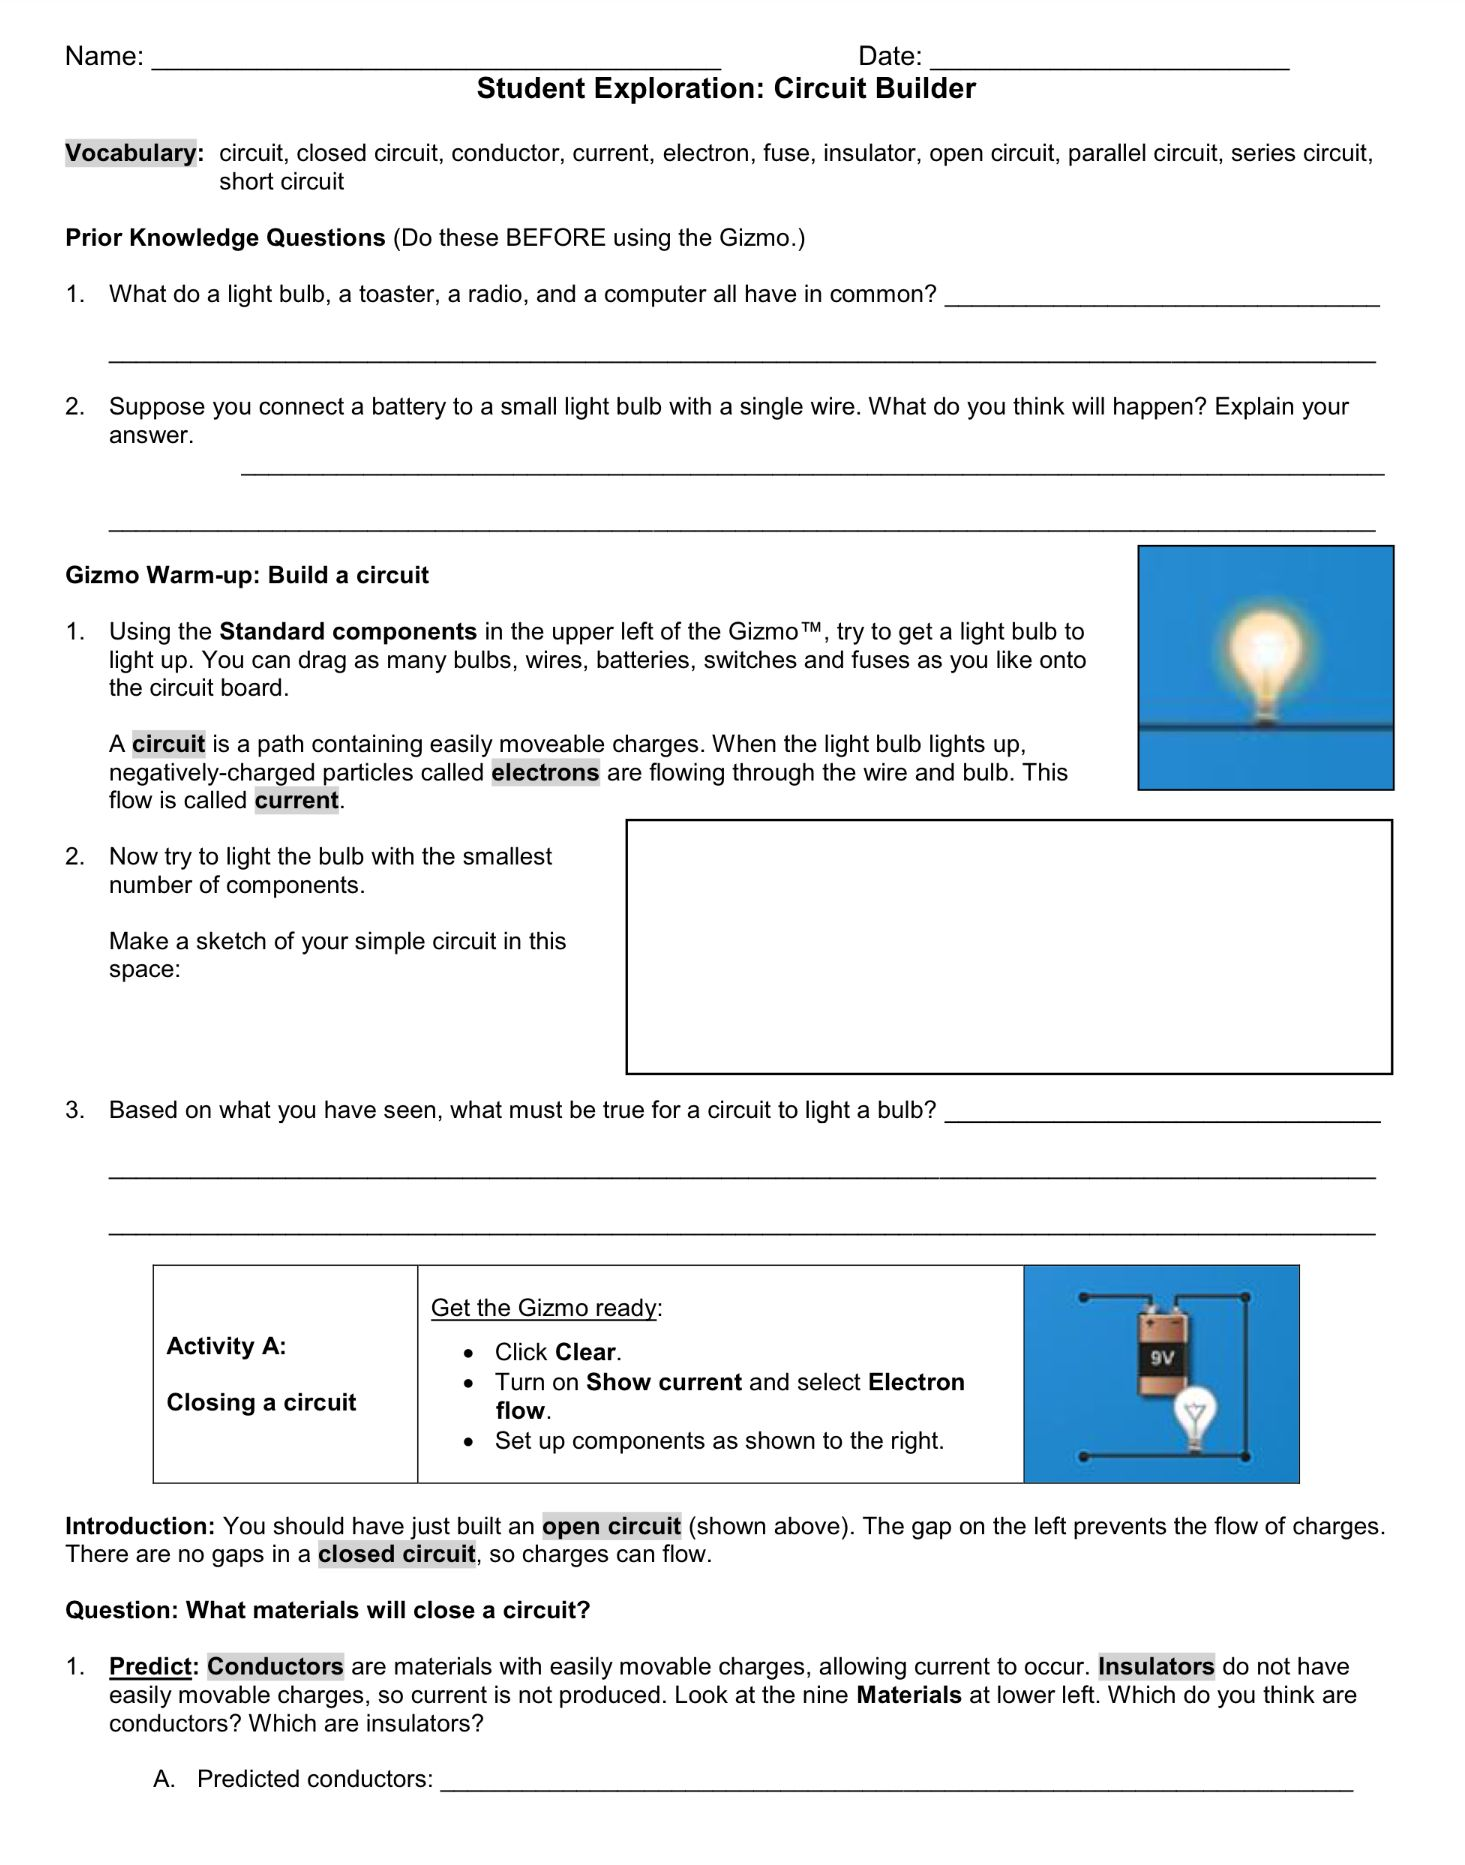 Circuit Builder - Student Exploration Worksheet - Wednesday, February 21,  2018 - www.